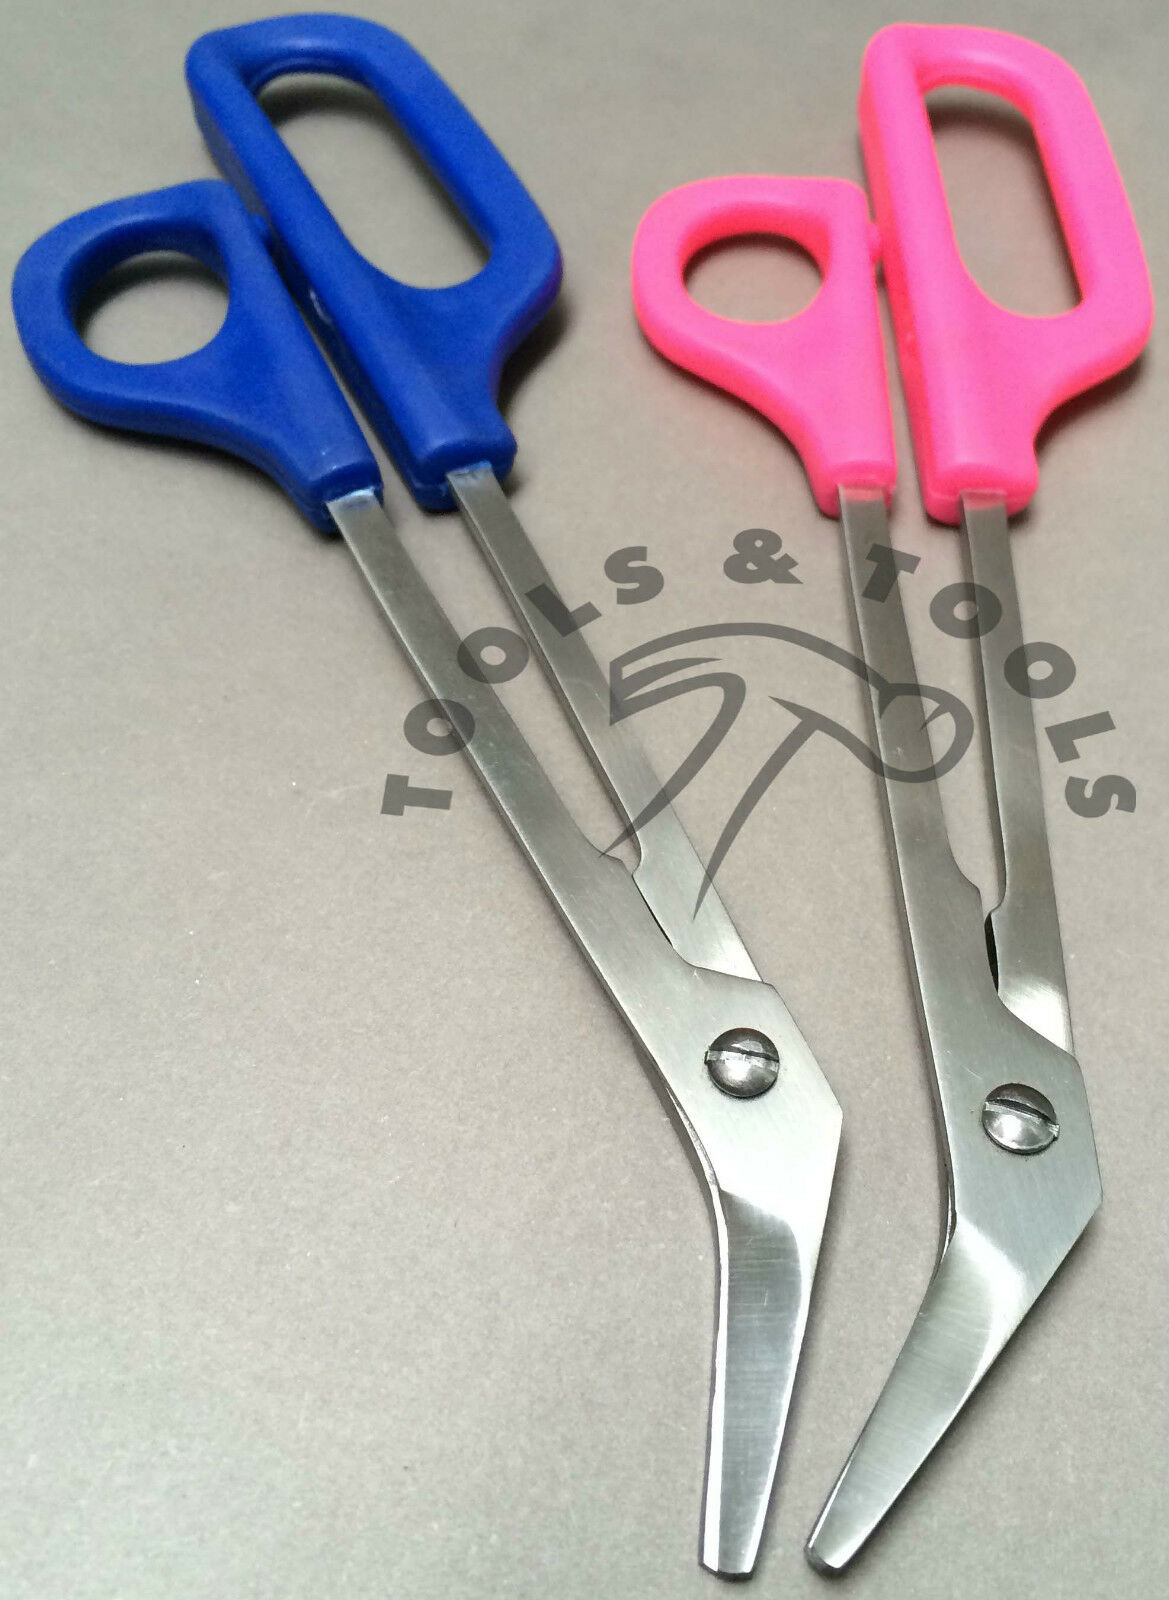 SET OF 2 TOE NAIL Clippers Scissors LONG REACH Manicure Pedicure ...